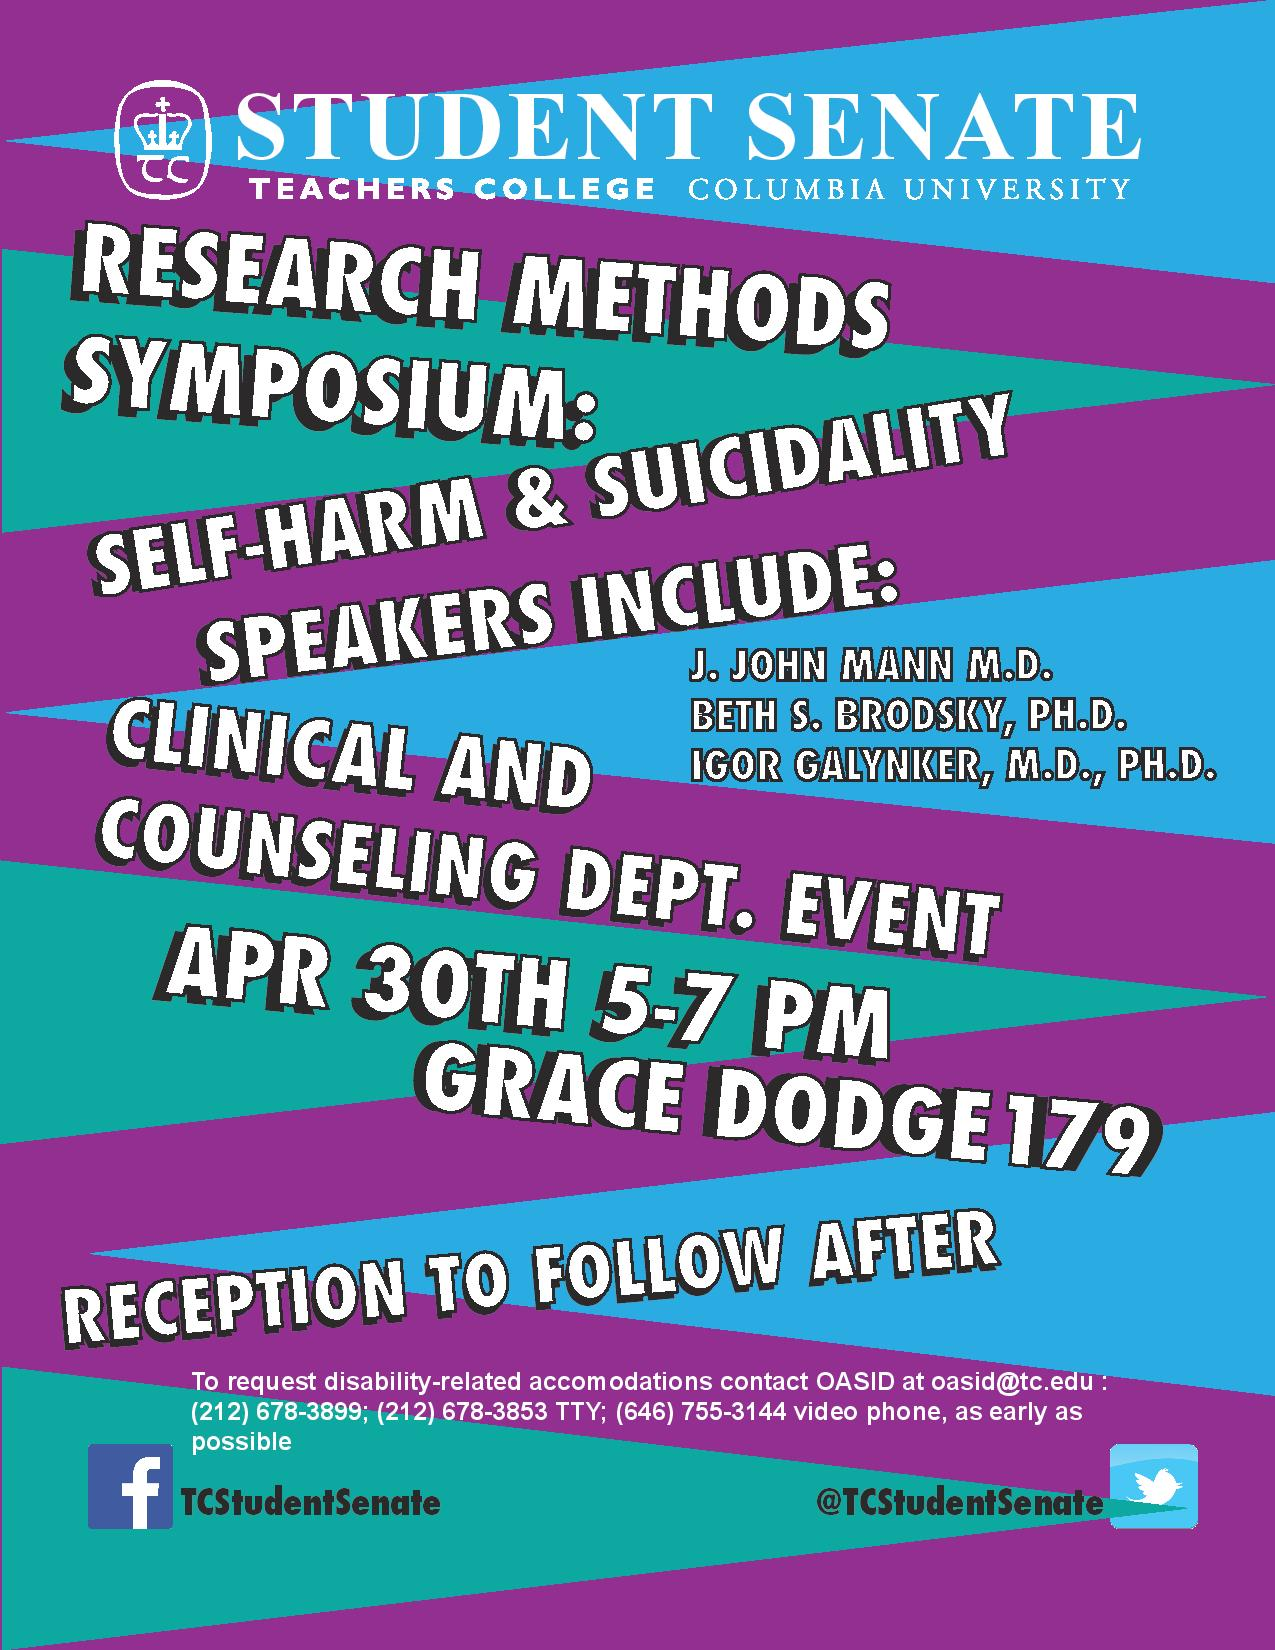 Research Methods Symposium: Self-Harm & Suicidality